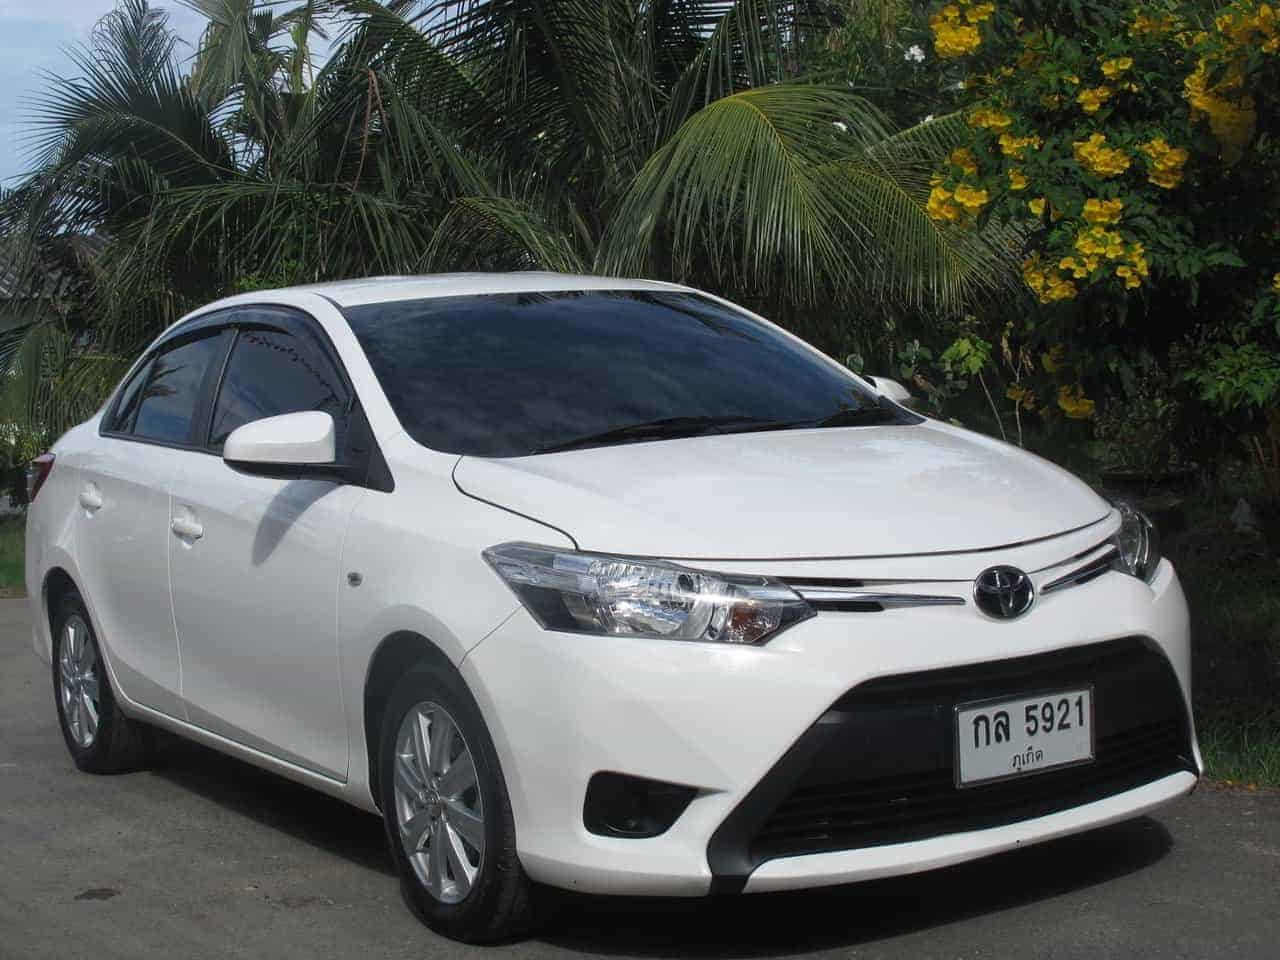 Sedan Car Hire in Koh Samui